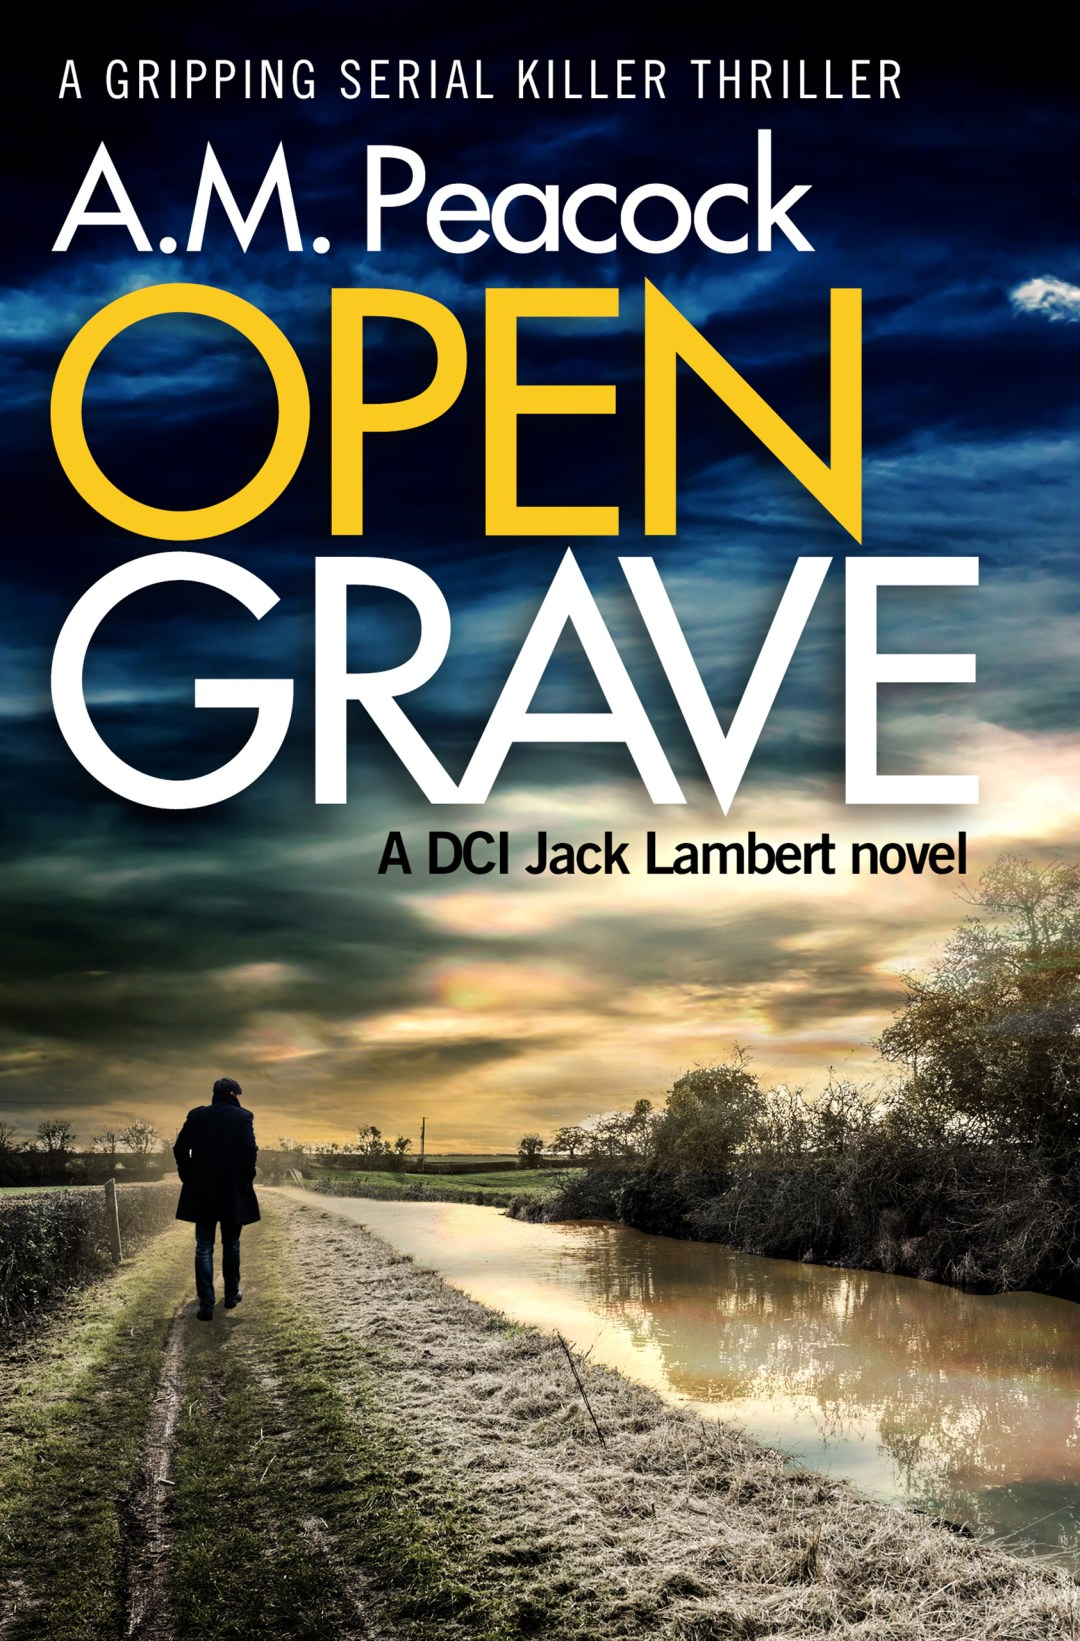 #BookReview of Open Grave by A.M Peacock @ampeacockwriter @bloodhoundbook #opengrave #netgalley